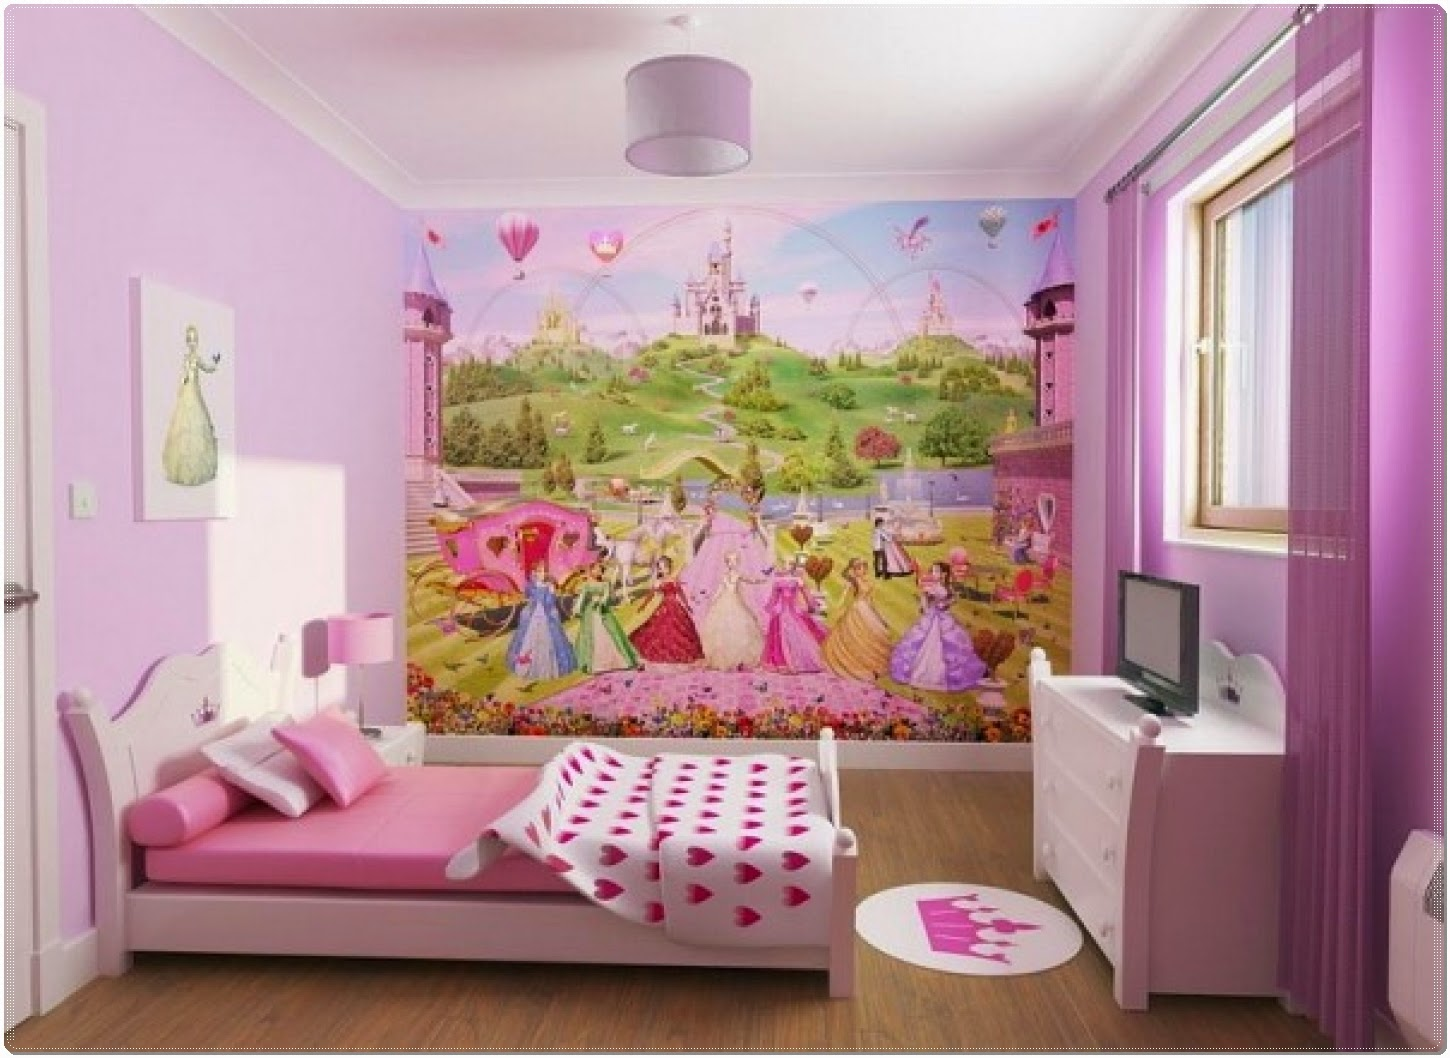 Kids bedroom the best idea of little girl room with - Cute girl room ideas ...